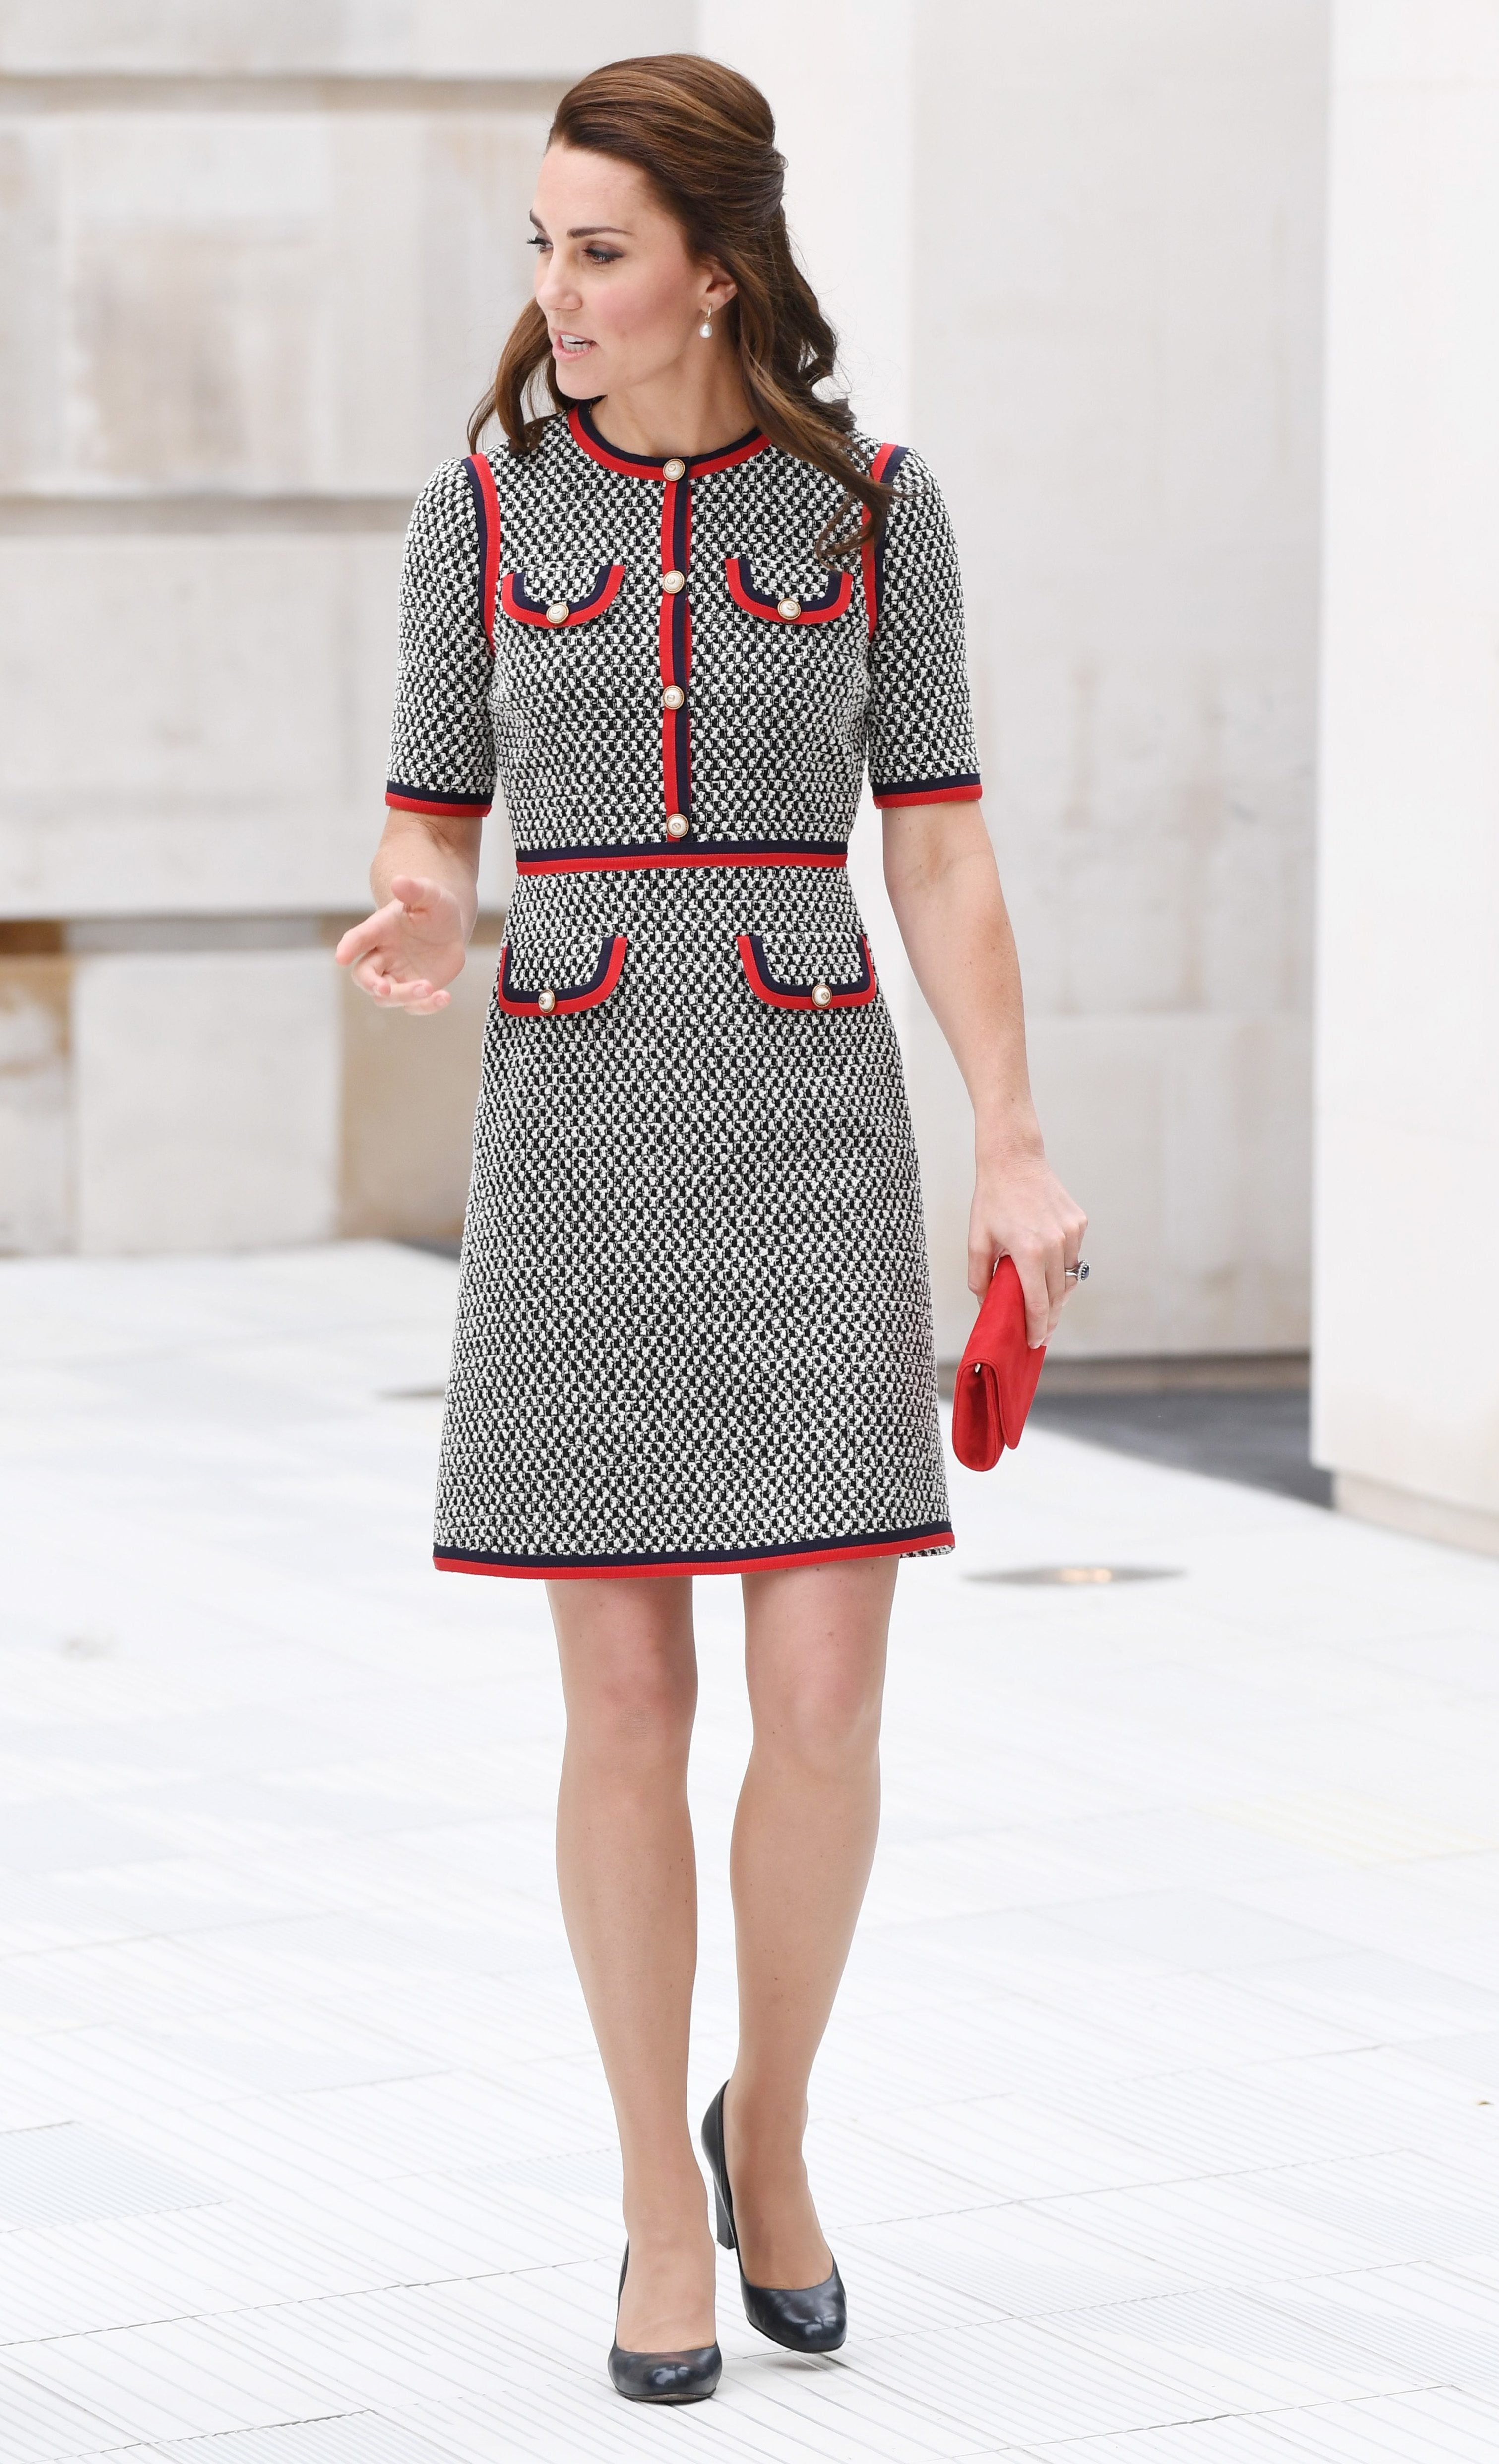 Catherine Duchess of Cambridge visit to the V&A Museum, London, UK - 29 Jun 2017